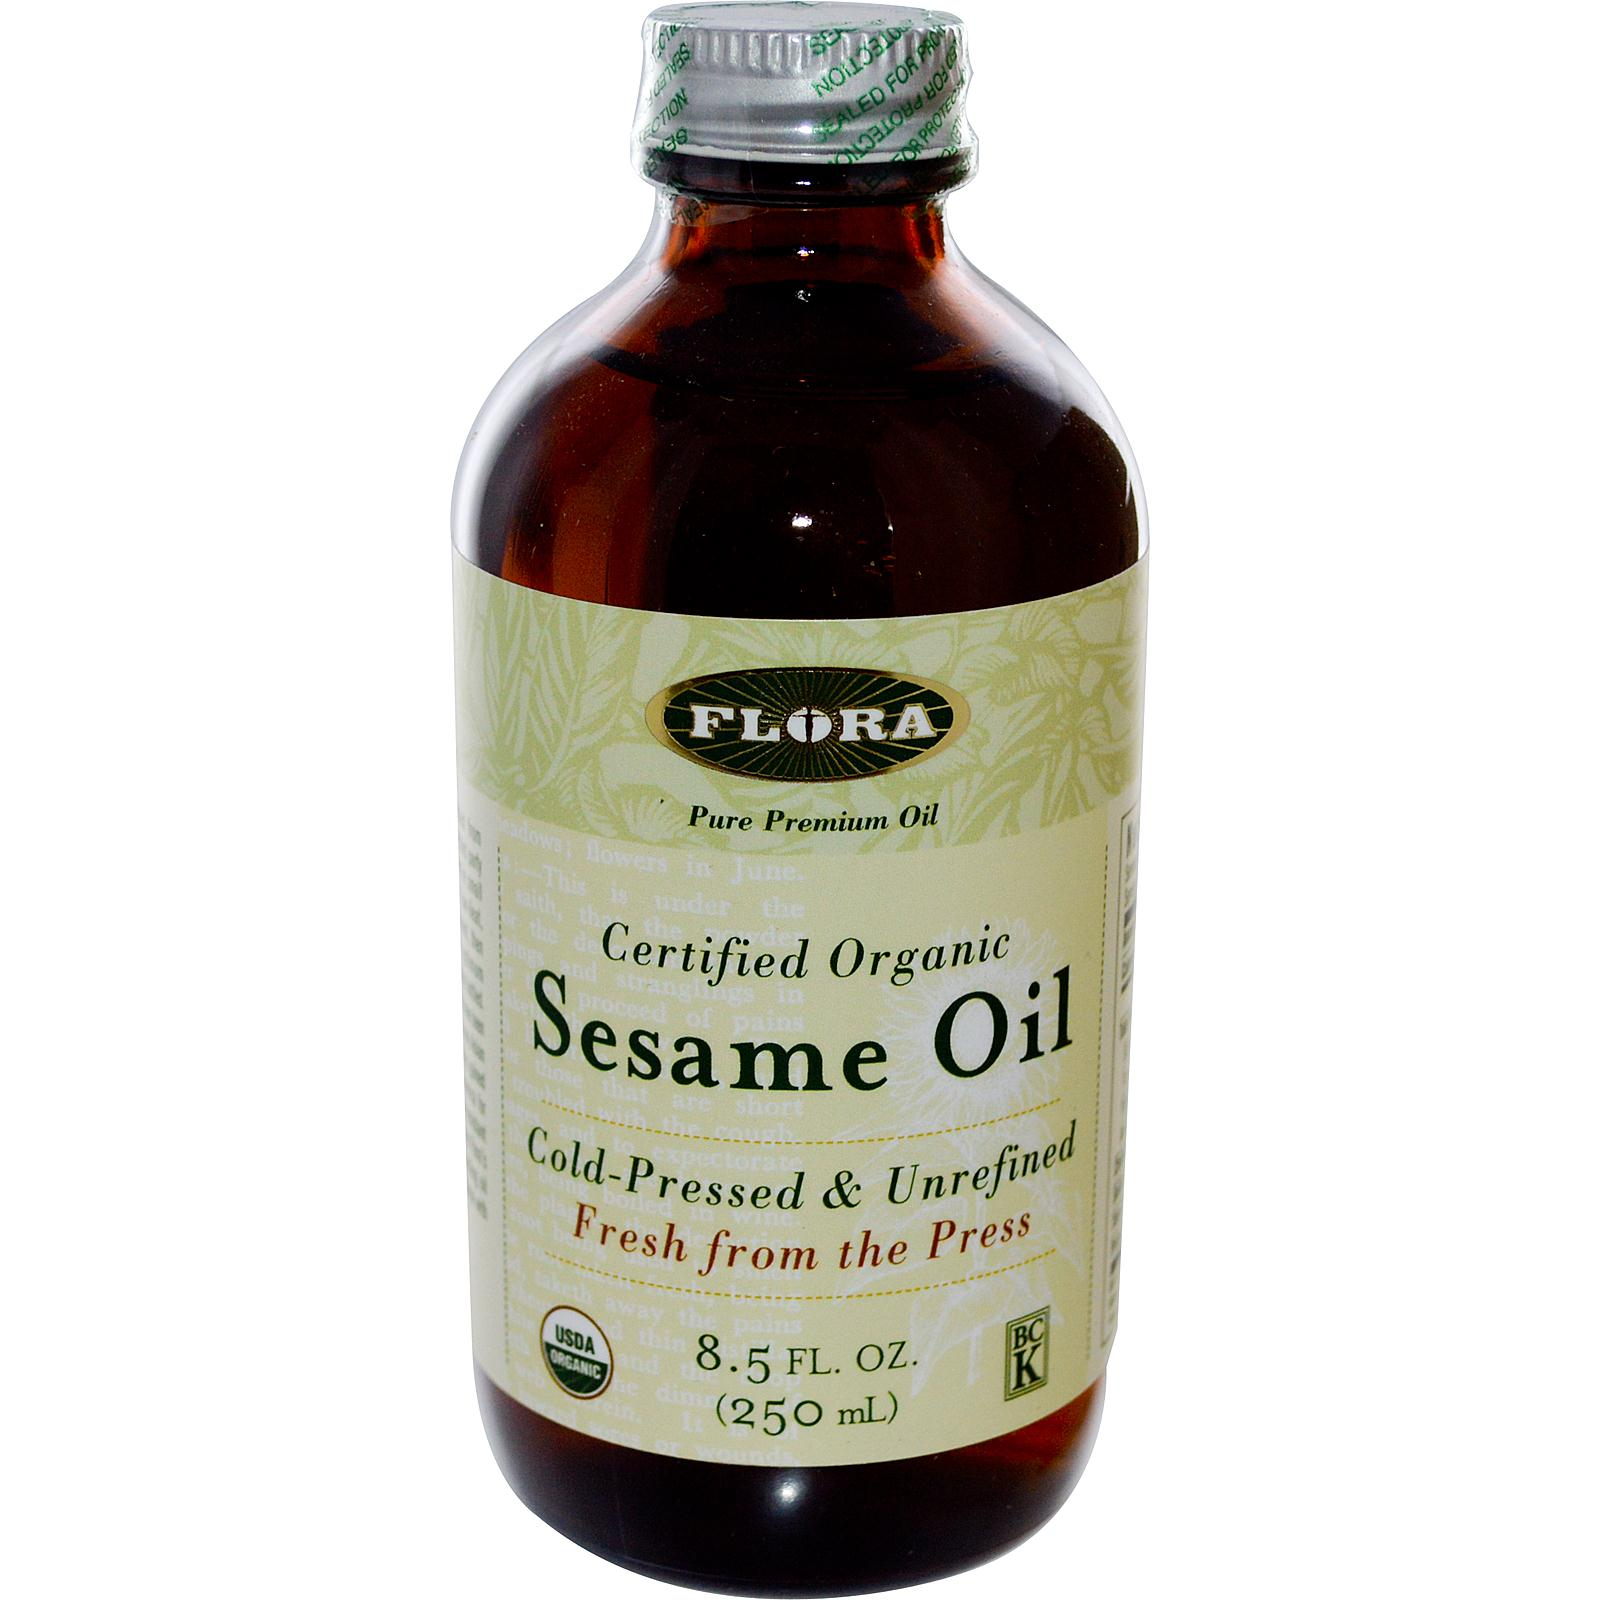 How To Use Sesame Oil For Hair Loss